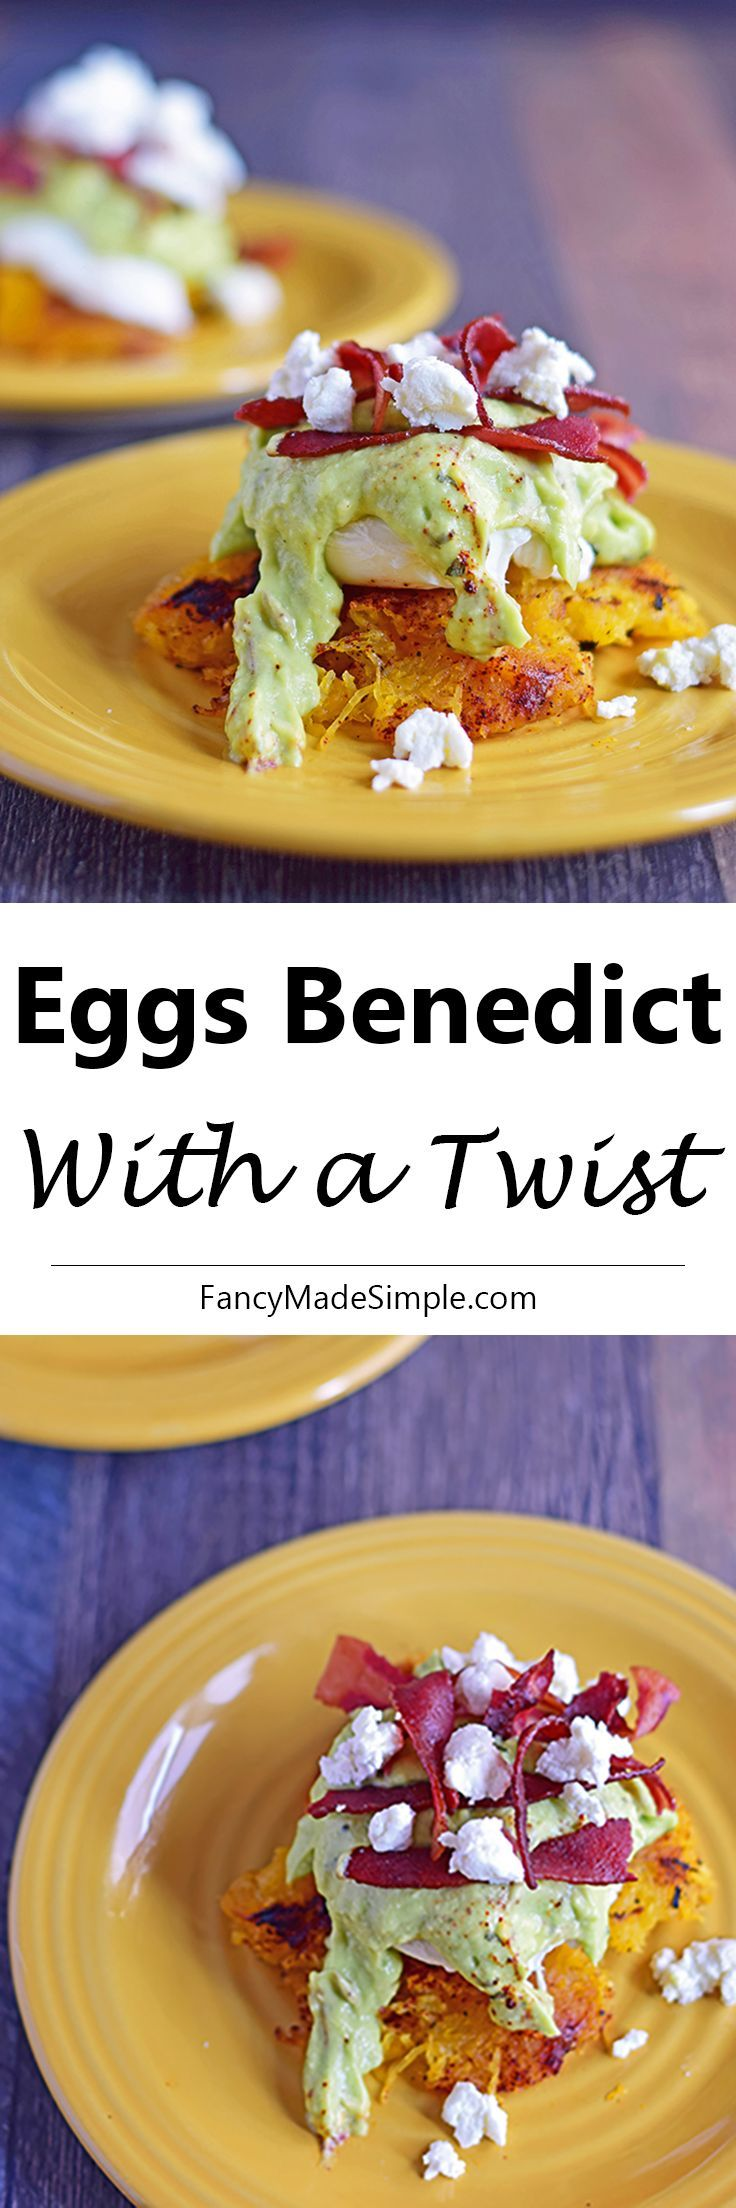 This delicious twist on eggs benedict has avocado hollandaise sauce and spaghetti squash.  Healthy breakfast recipe.